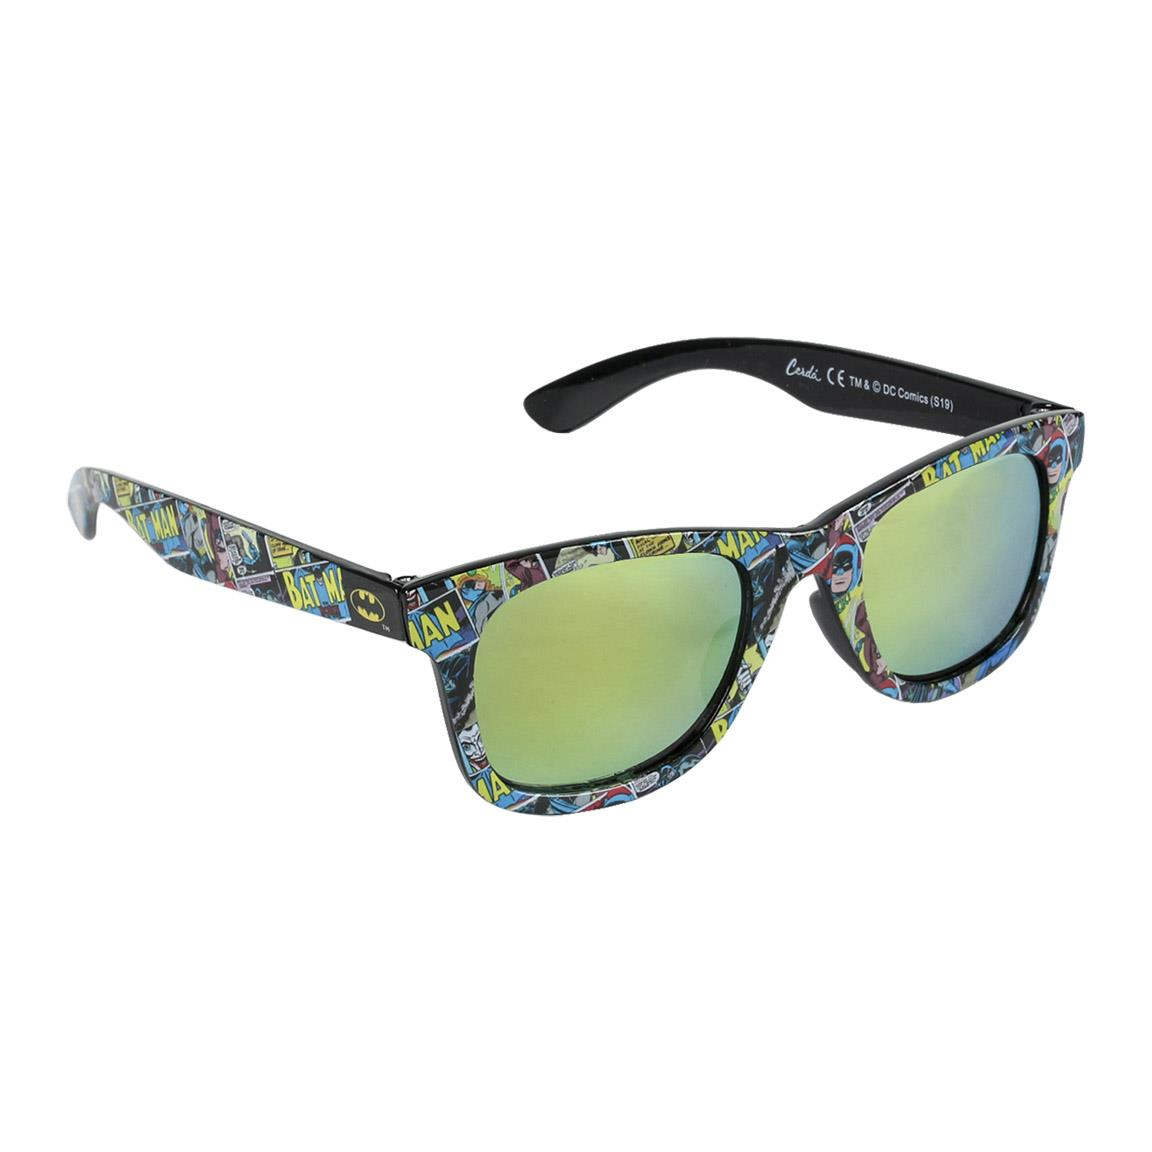 DC Batman Kids Sunglasses with Matching Glasses Carrying Case and UV Protection